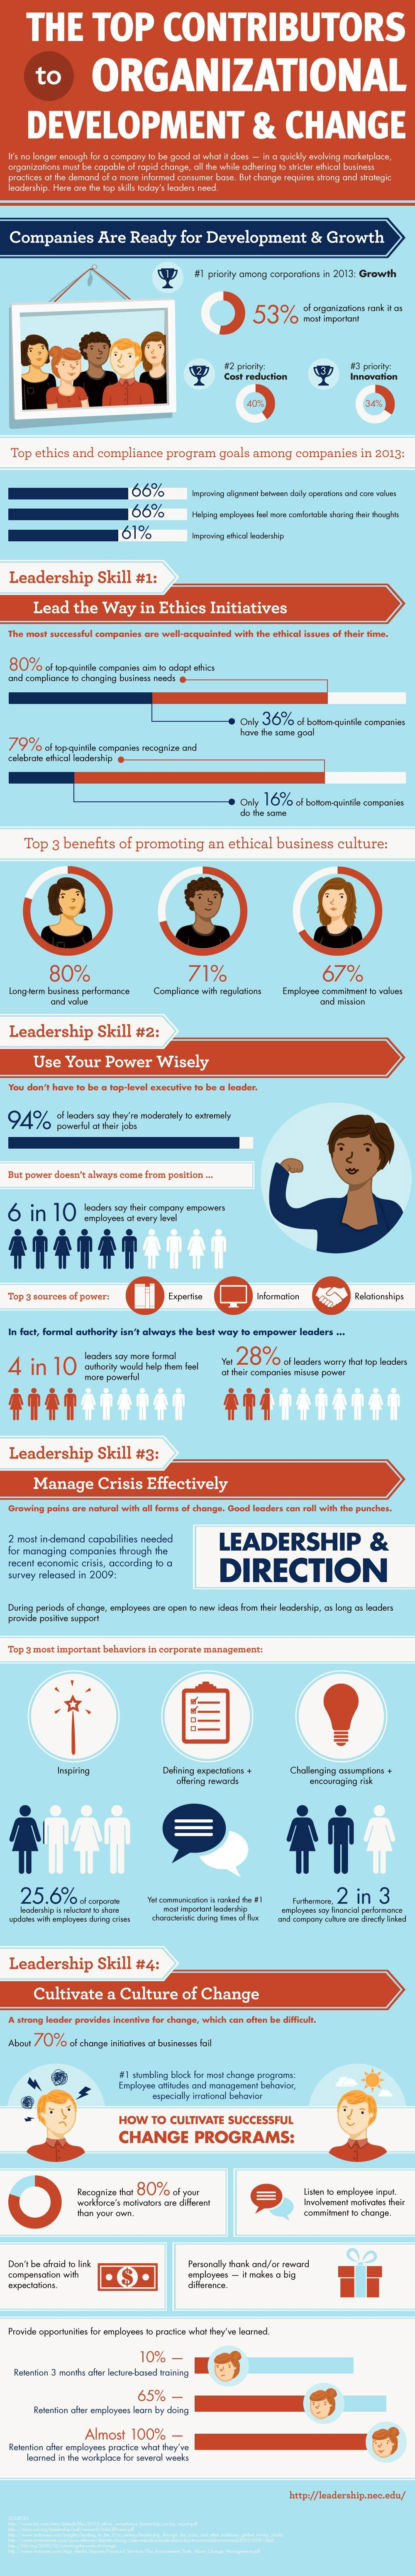 Are You a Good Leader? (Infographic)